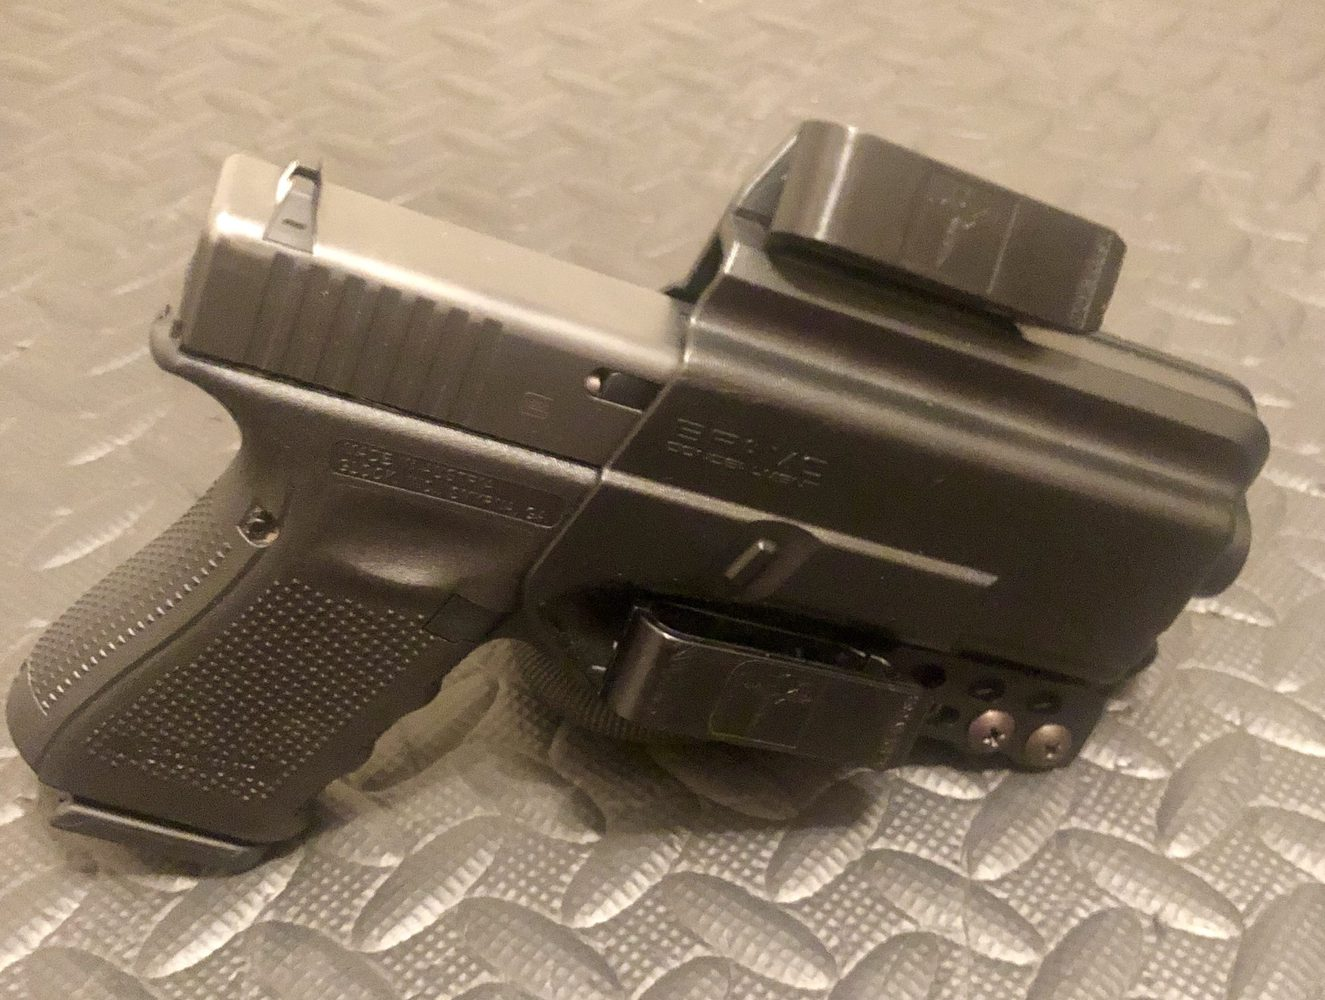 Bravo Concealment's TORSION IWB Kydex Gun Holster Review